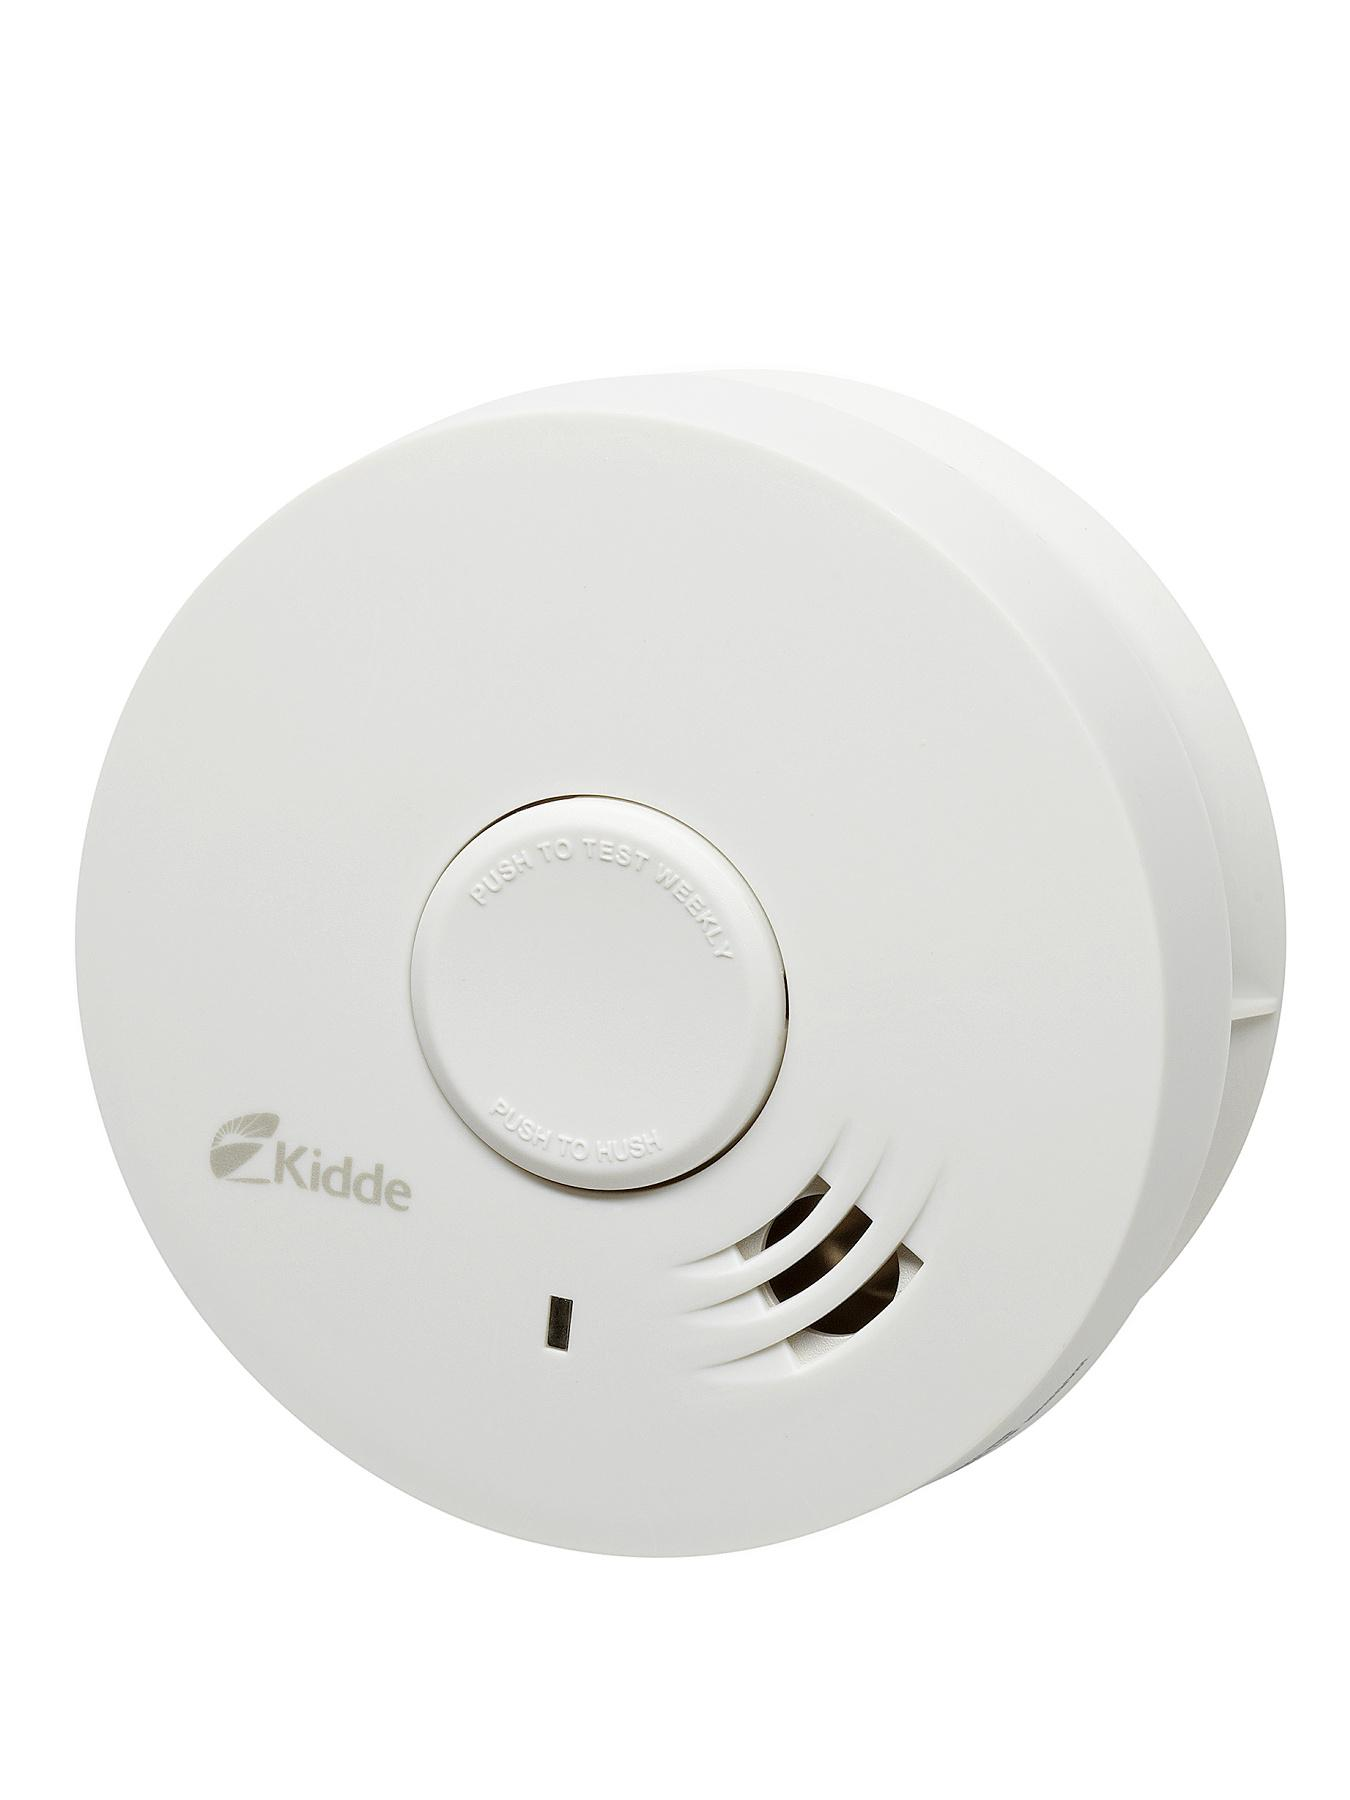 Kidde 10Y29 10 Year Optical Smoke Alarm